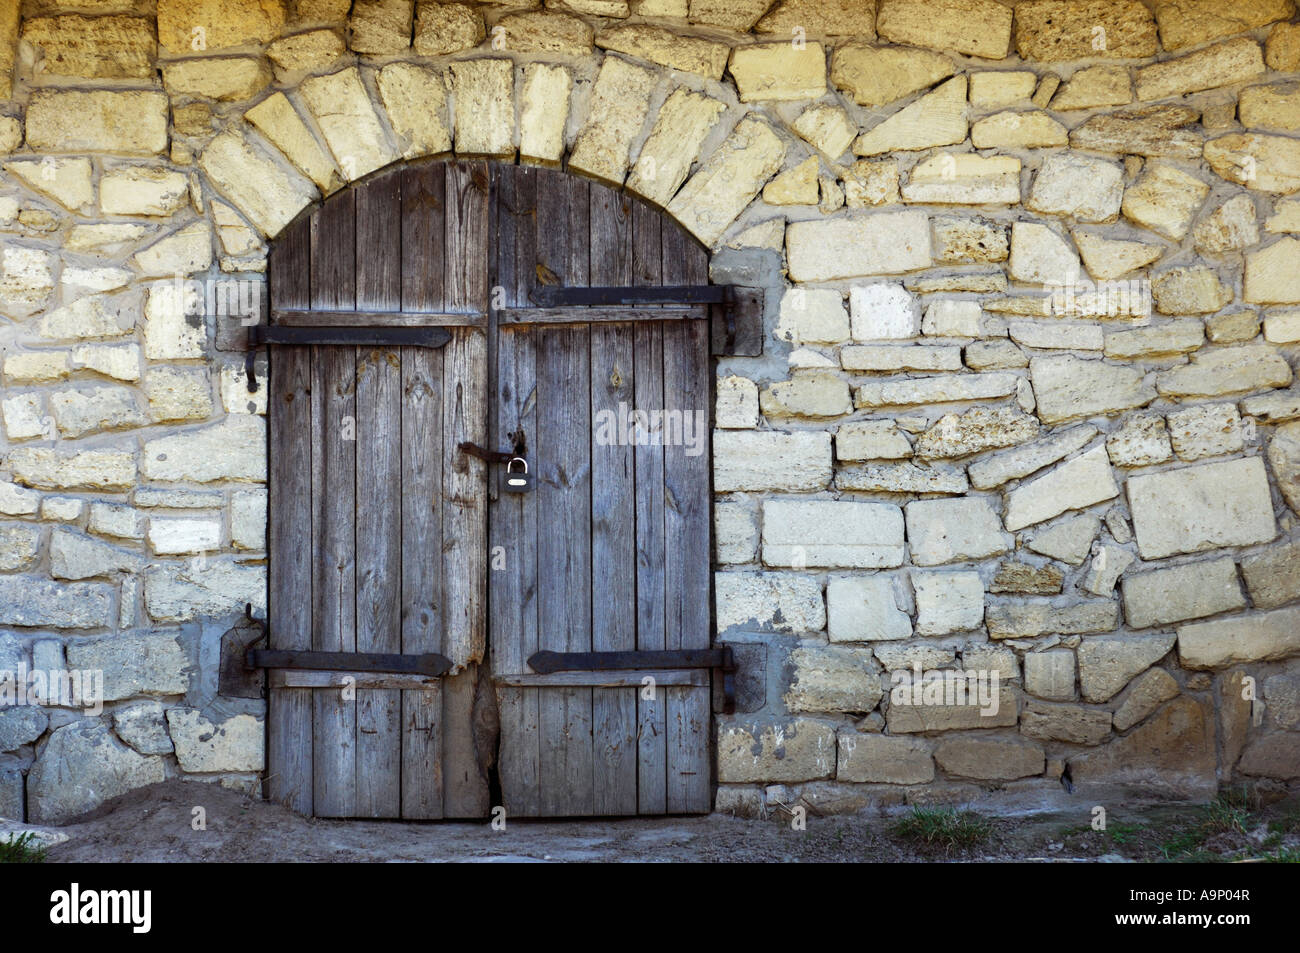 953 #886F43 Old Stone Wall With An Arched Wooden Door Texture Stock Photo Royalty  image Arched Wood Entry Doors 40831300